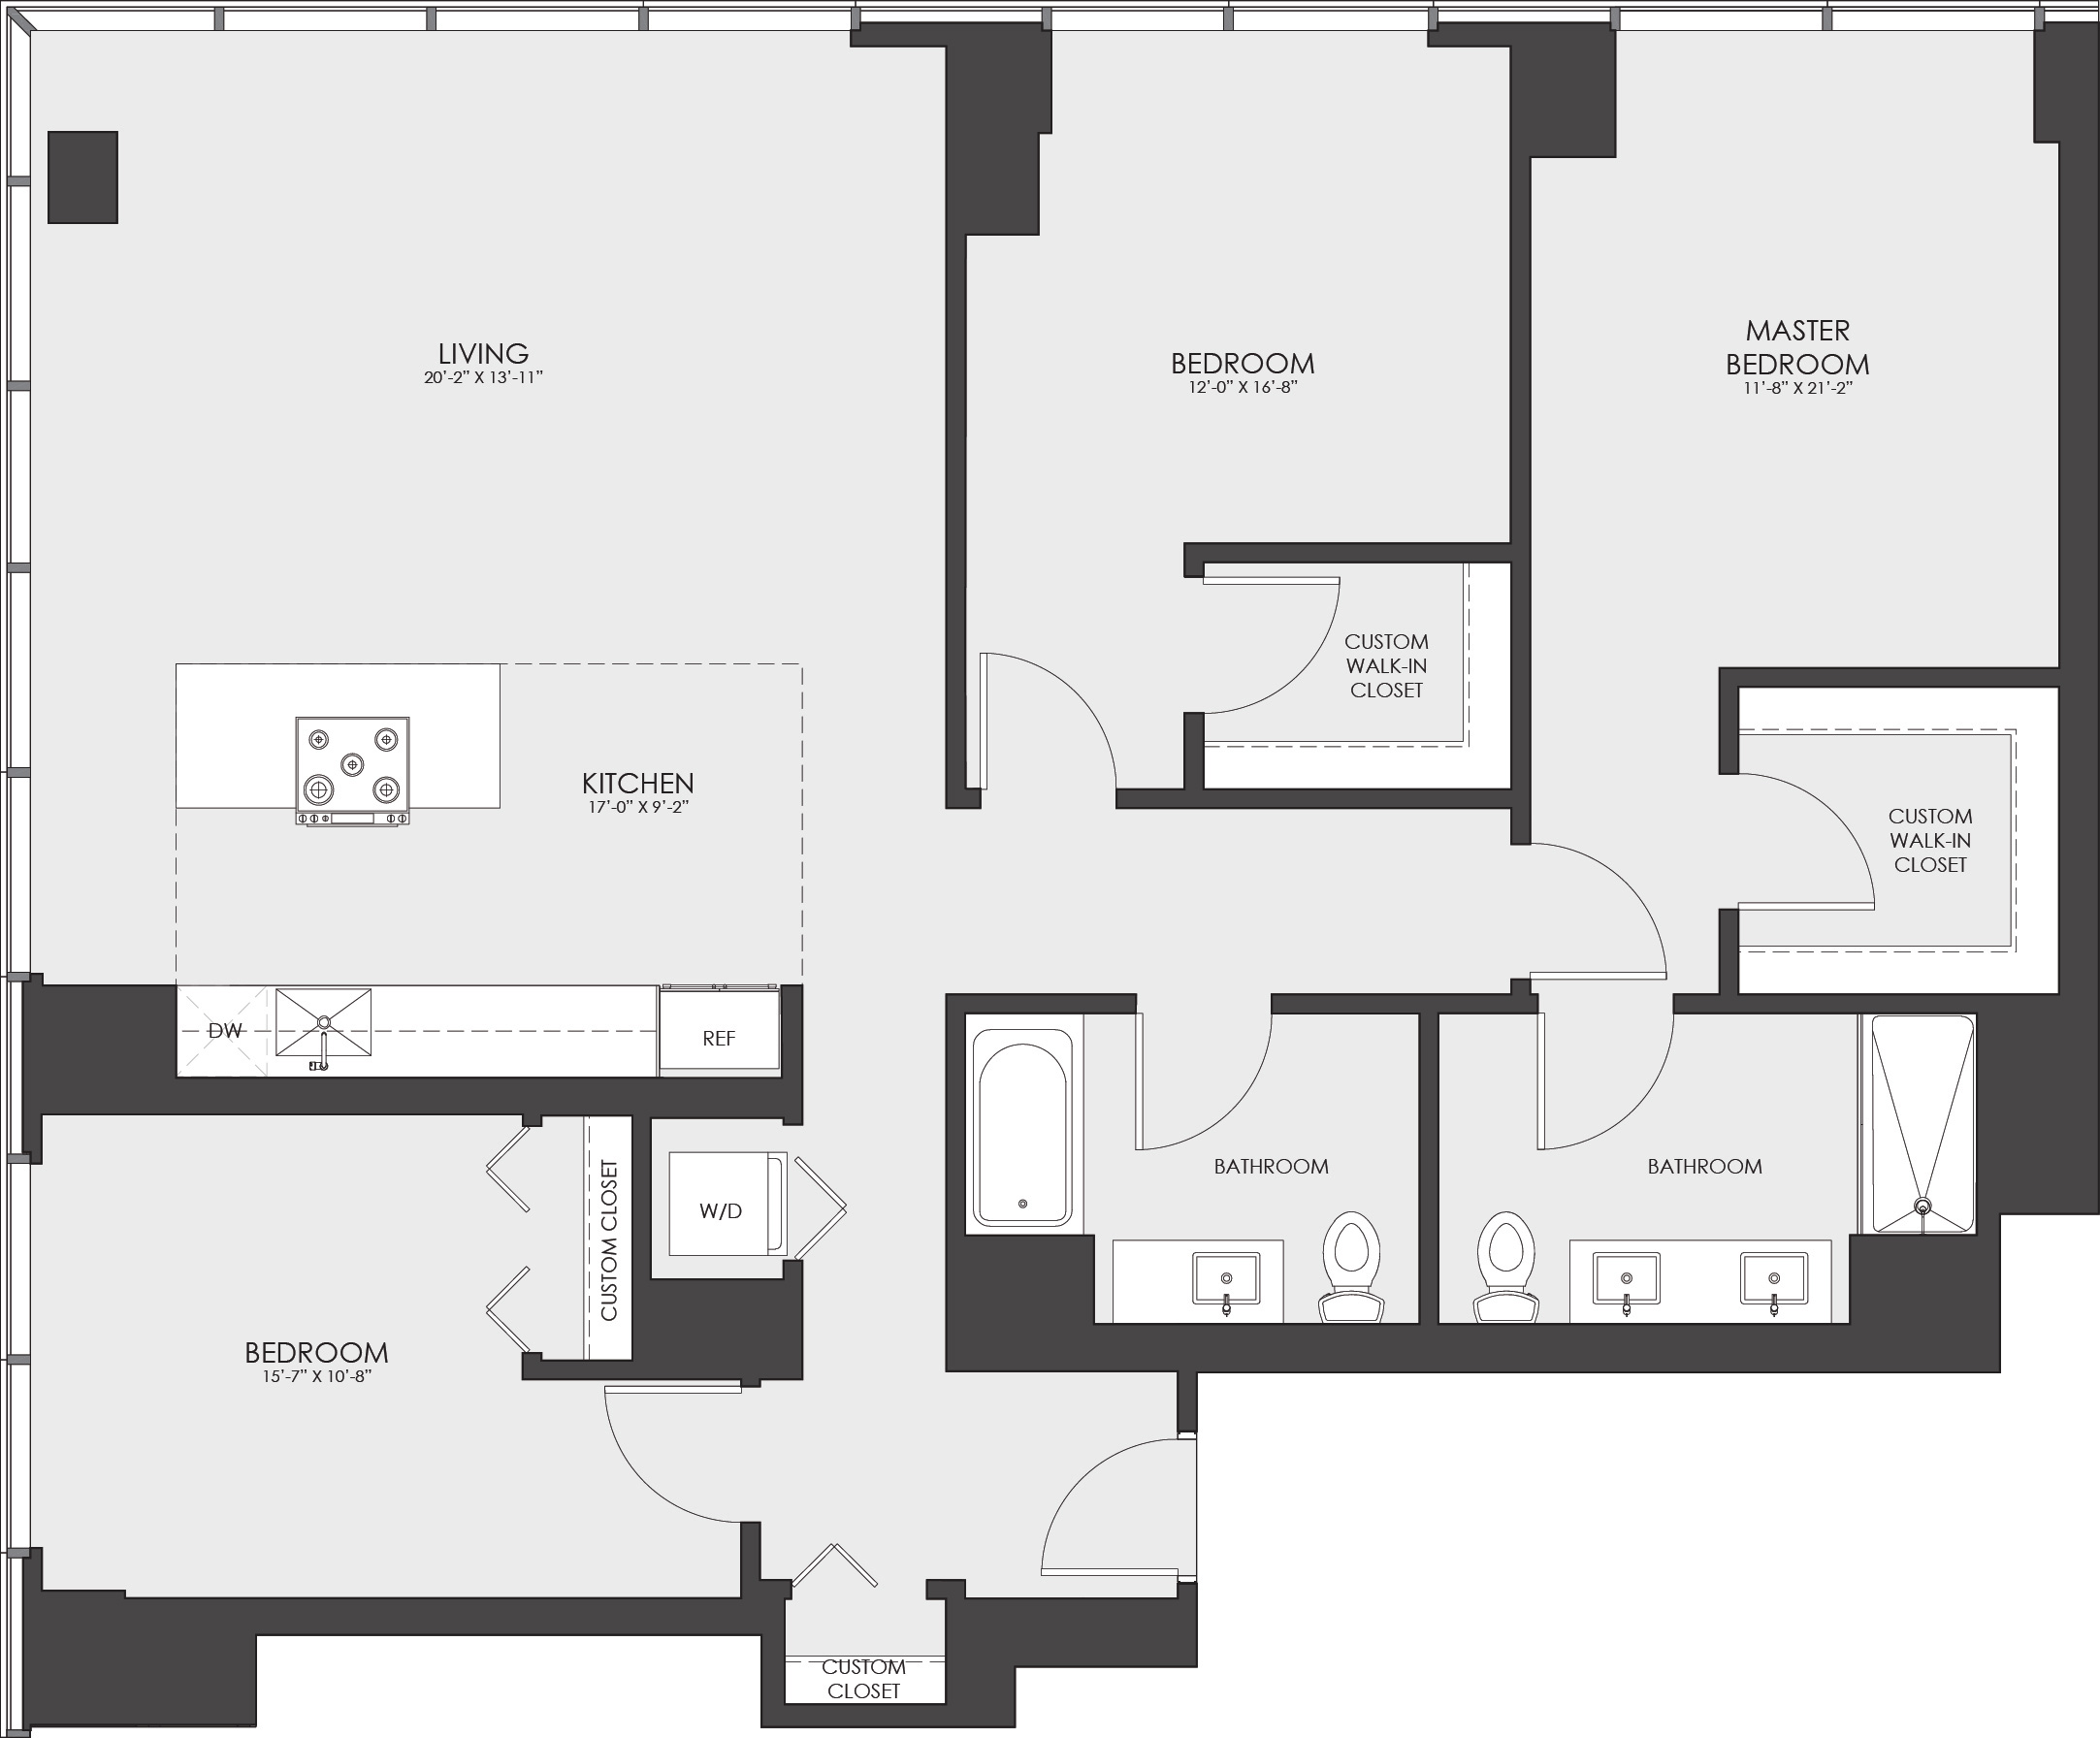 View HUBBARD221 Apartment Floor Plans